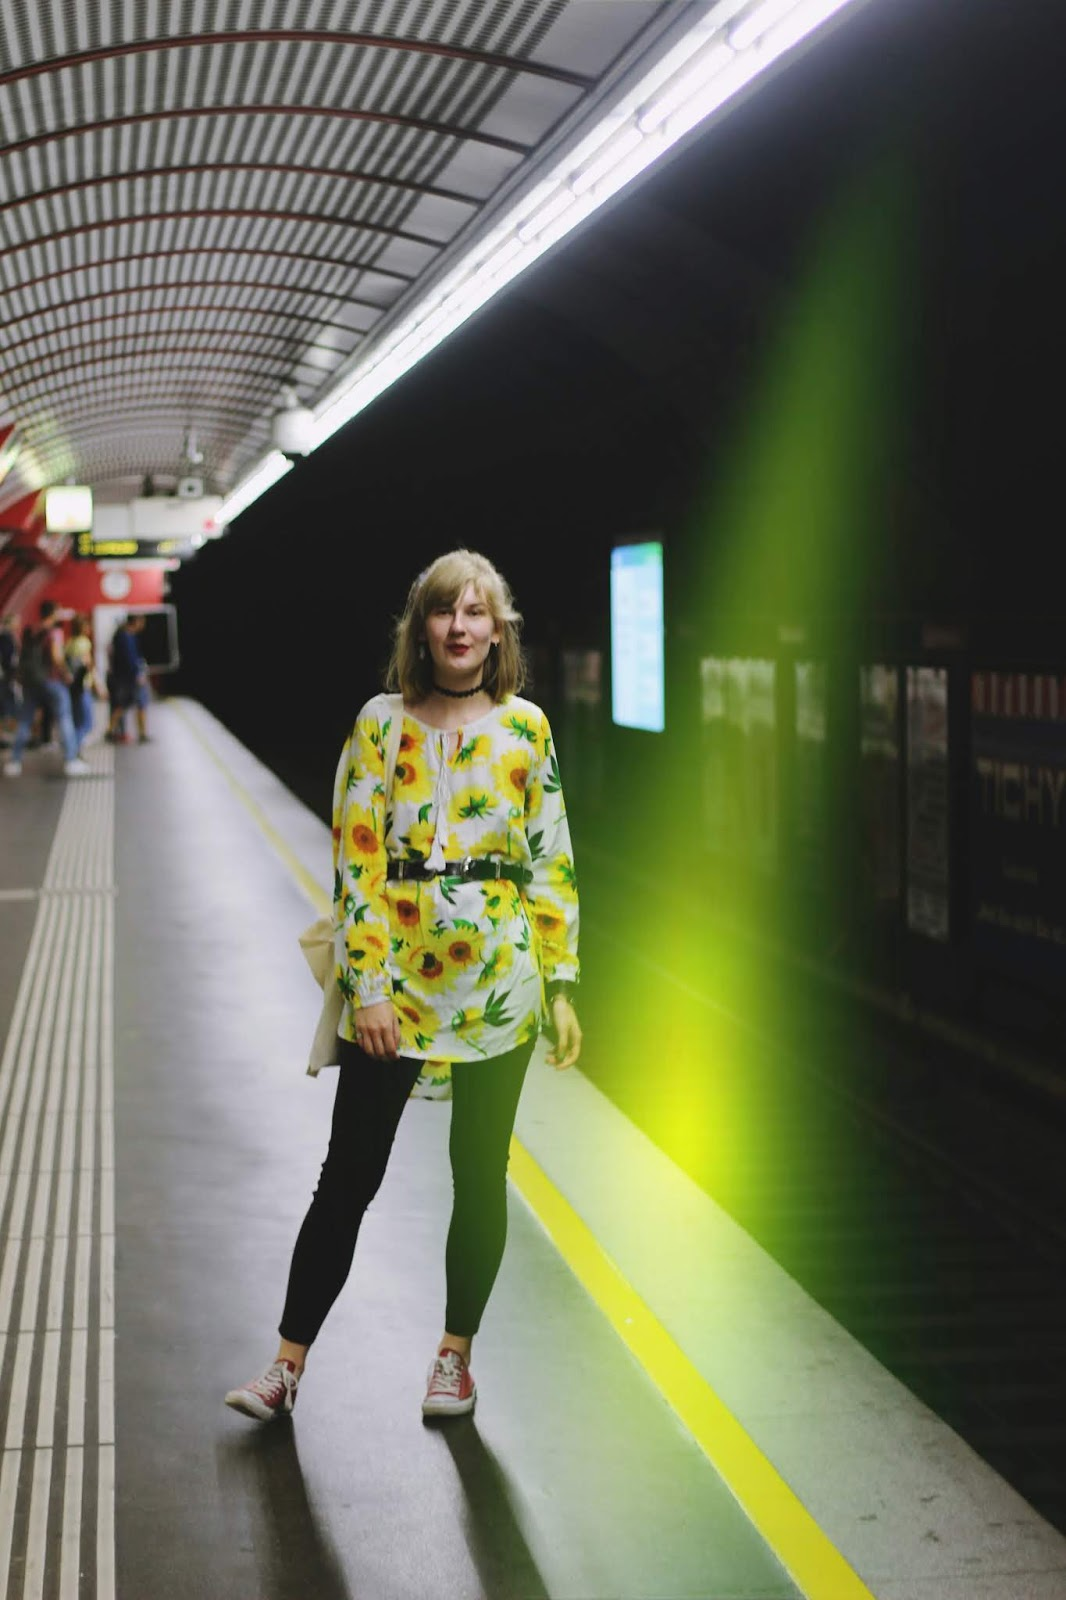 filipa canic, youarethepoet, you are the poet blog, filipa canic blog, zaful, sunflowers dress, vienna, ubahn,